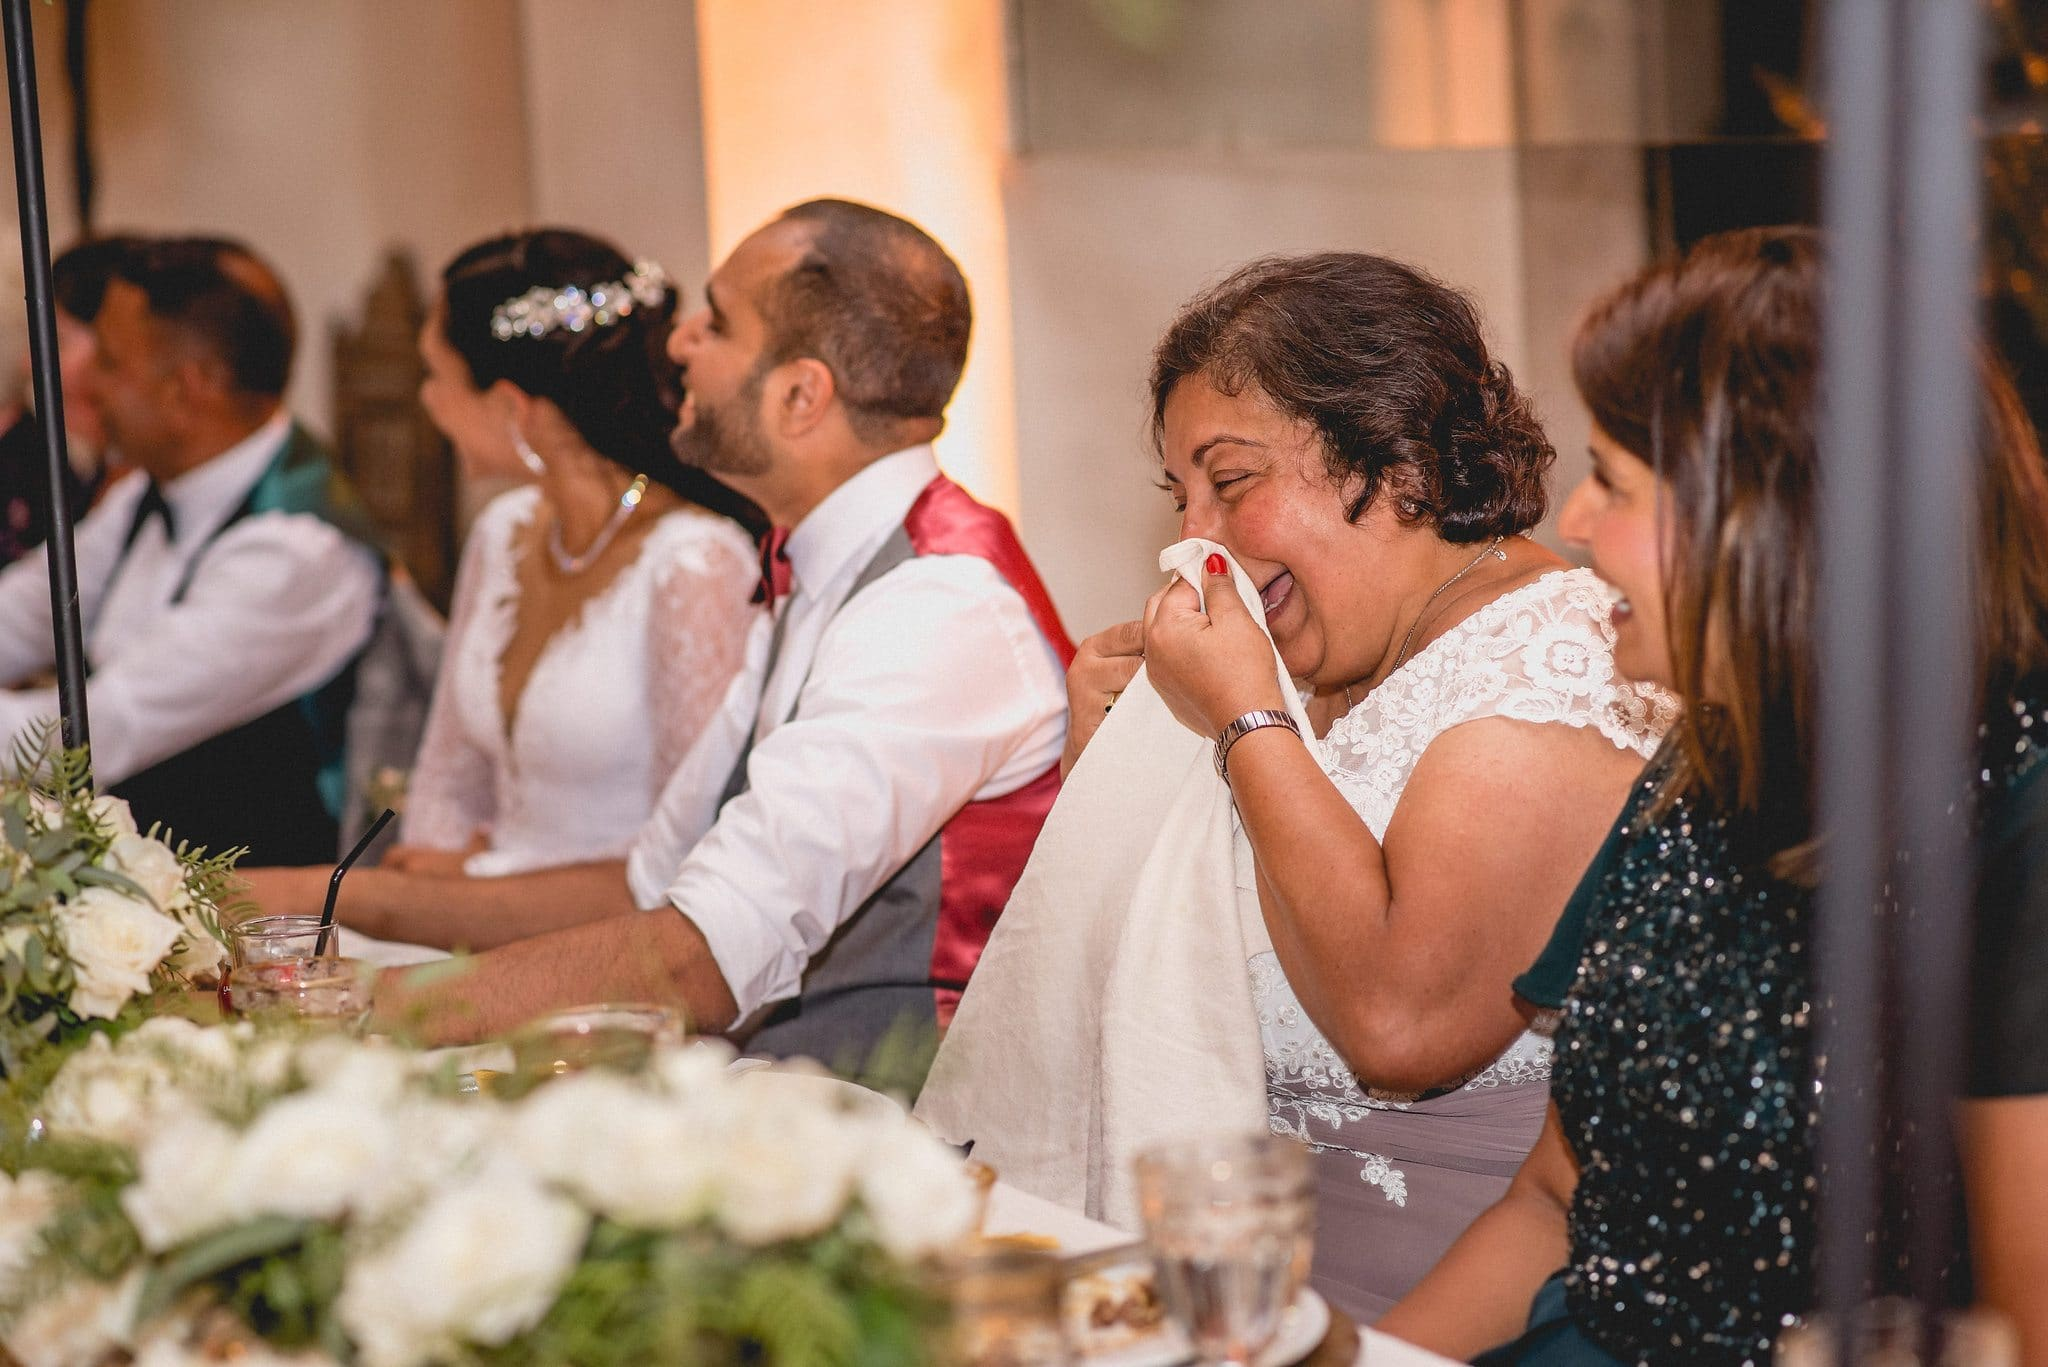 The groom's mother wipes her eyes on a napkin after a fit of the giggles during the speeches